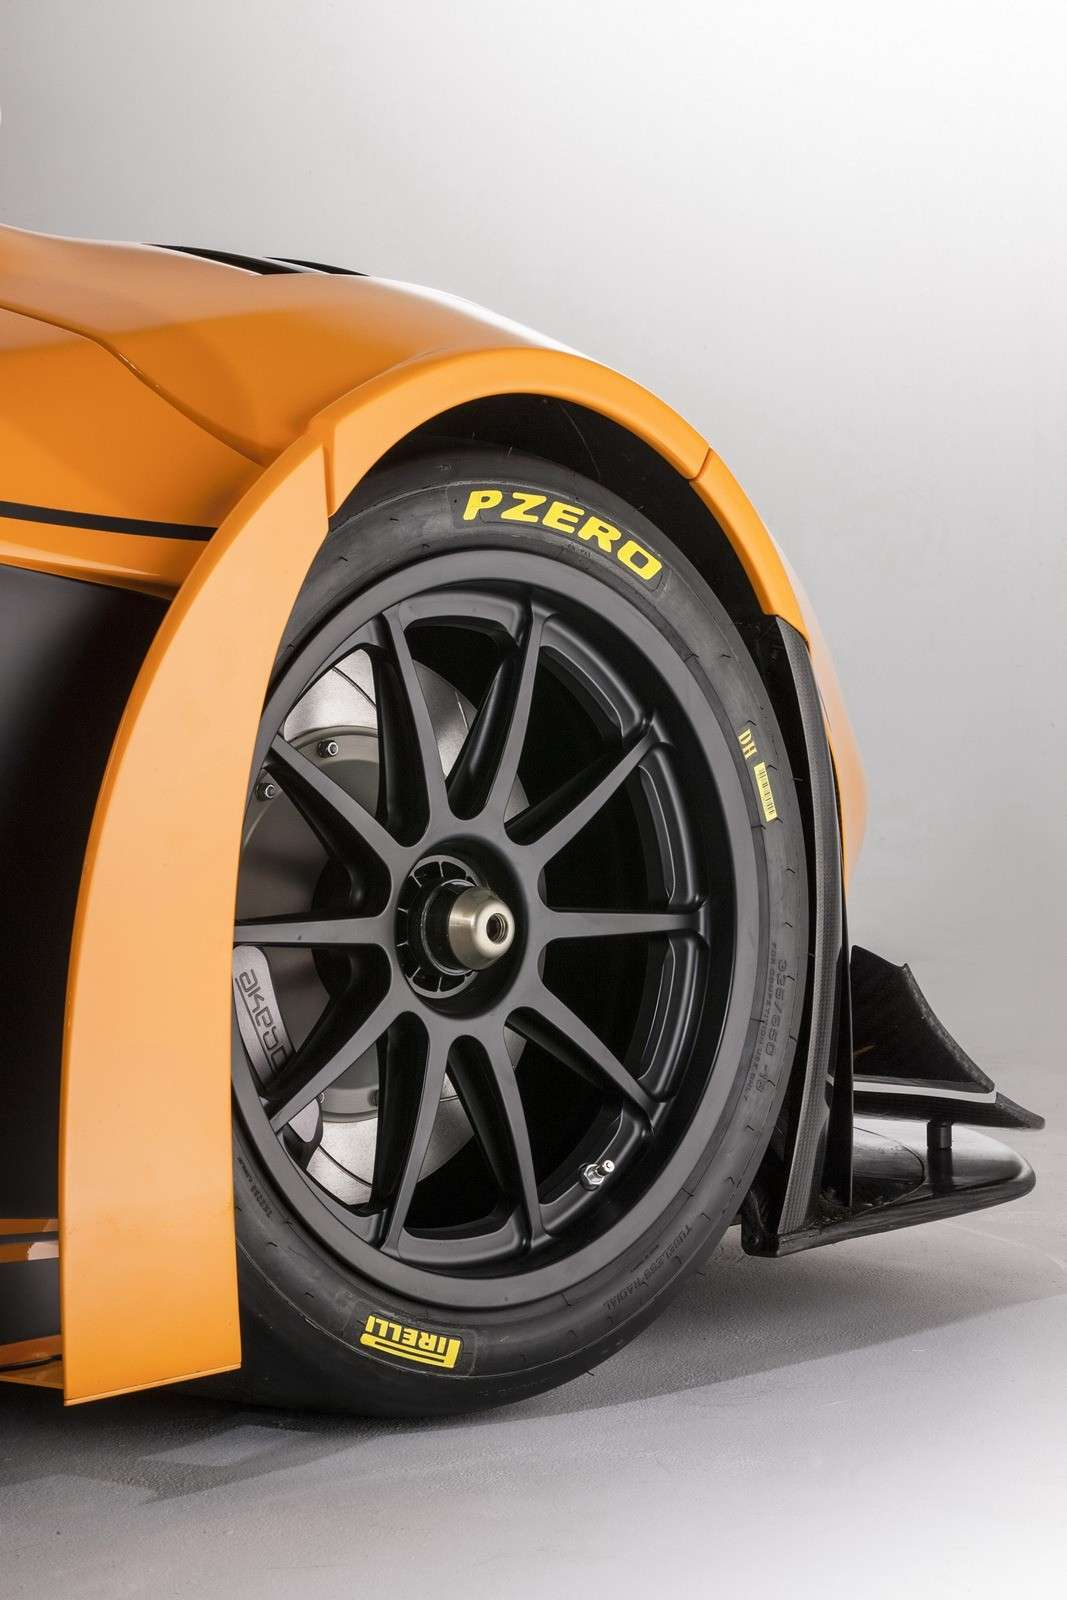 McLaren MP4-12C Can-Am Edition  - cerchi